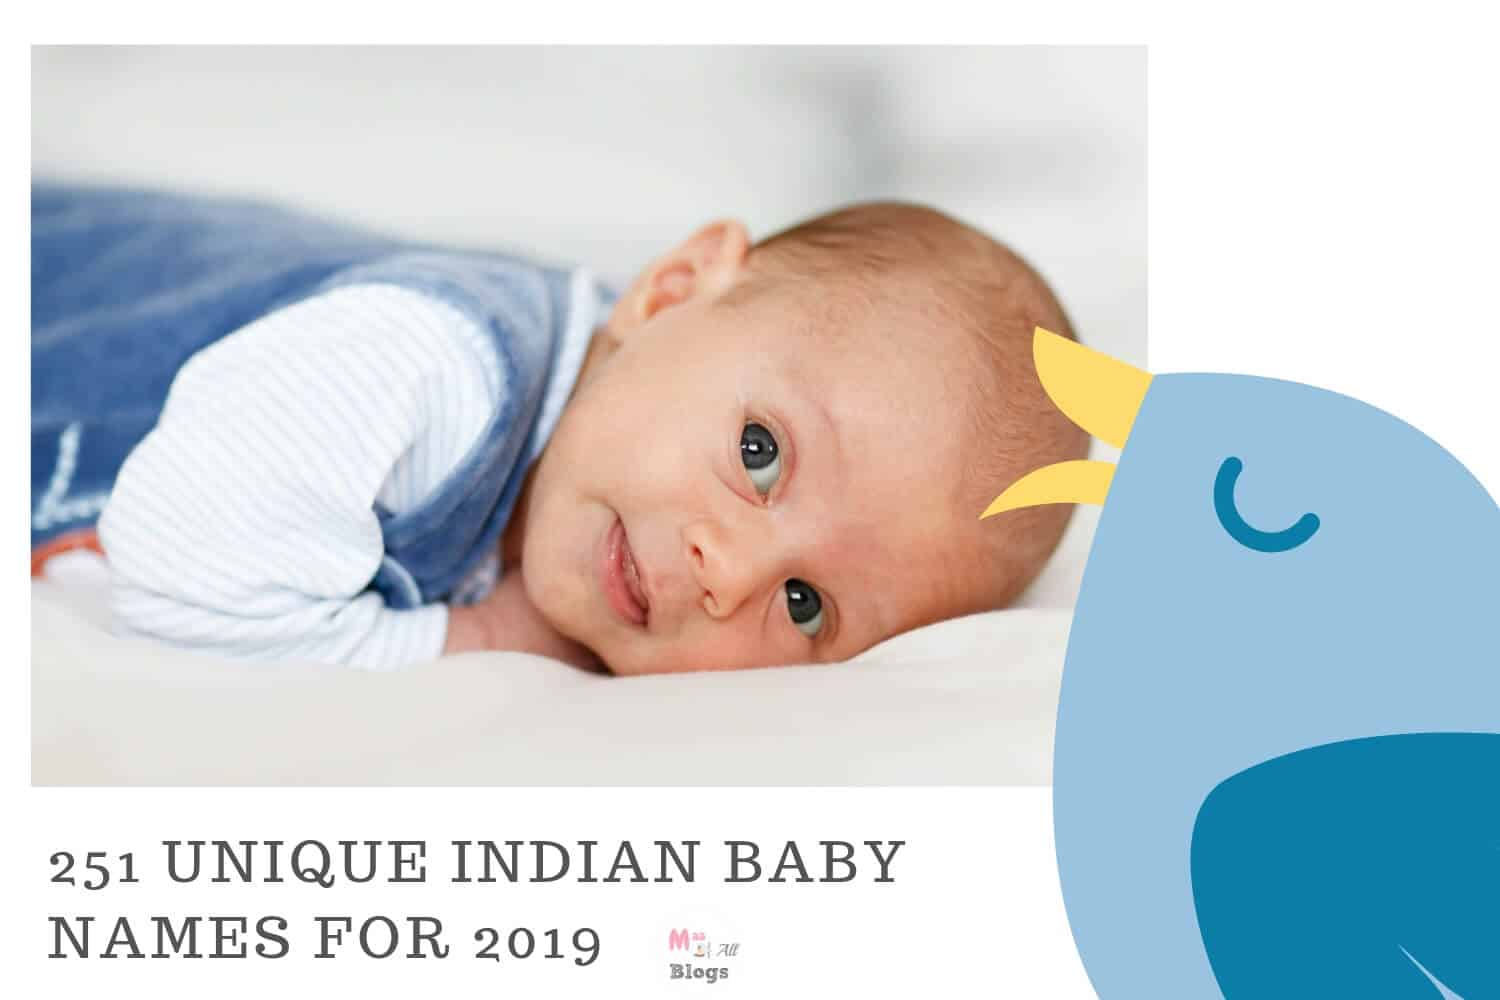 251 UNIQUE INDIAN BABY NAMES FOR 2019